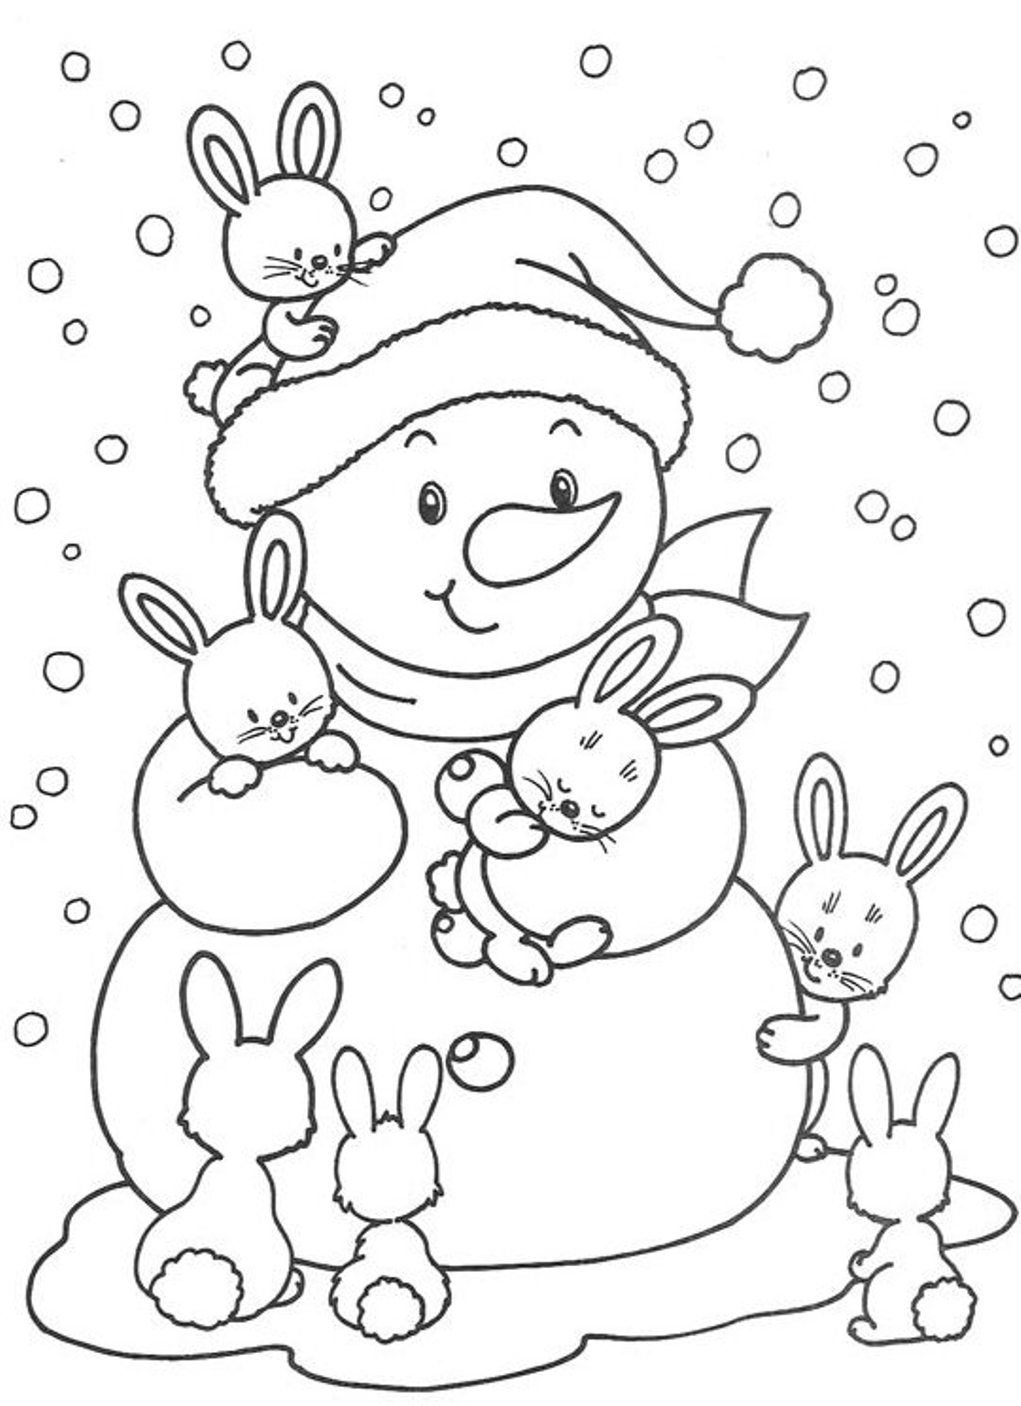 disney winter coloring pages - photo#29